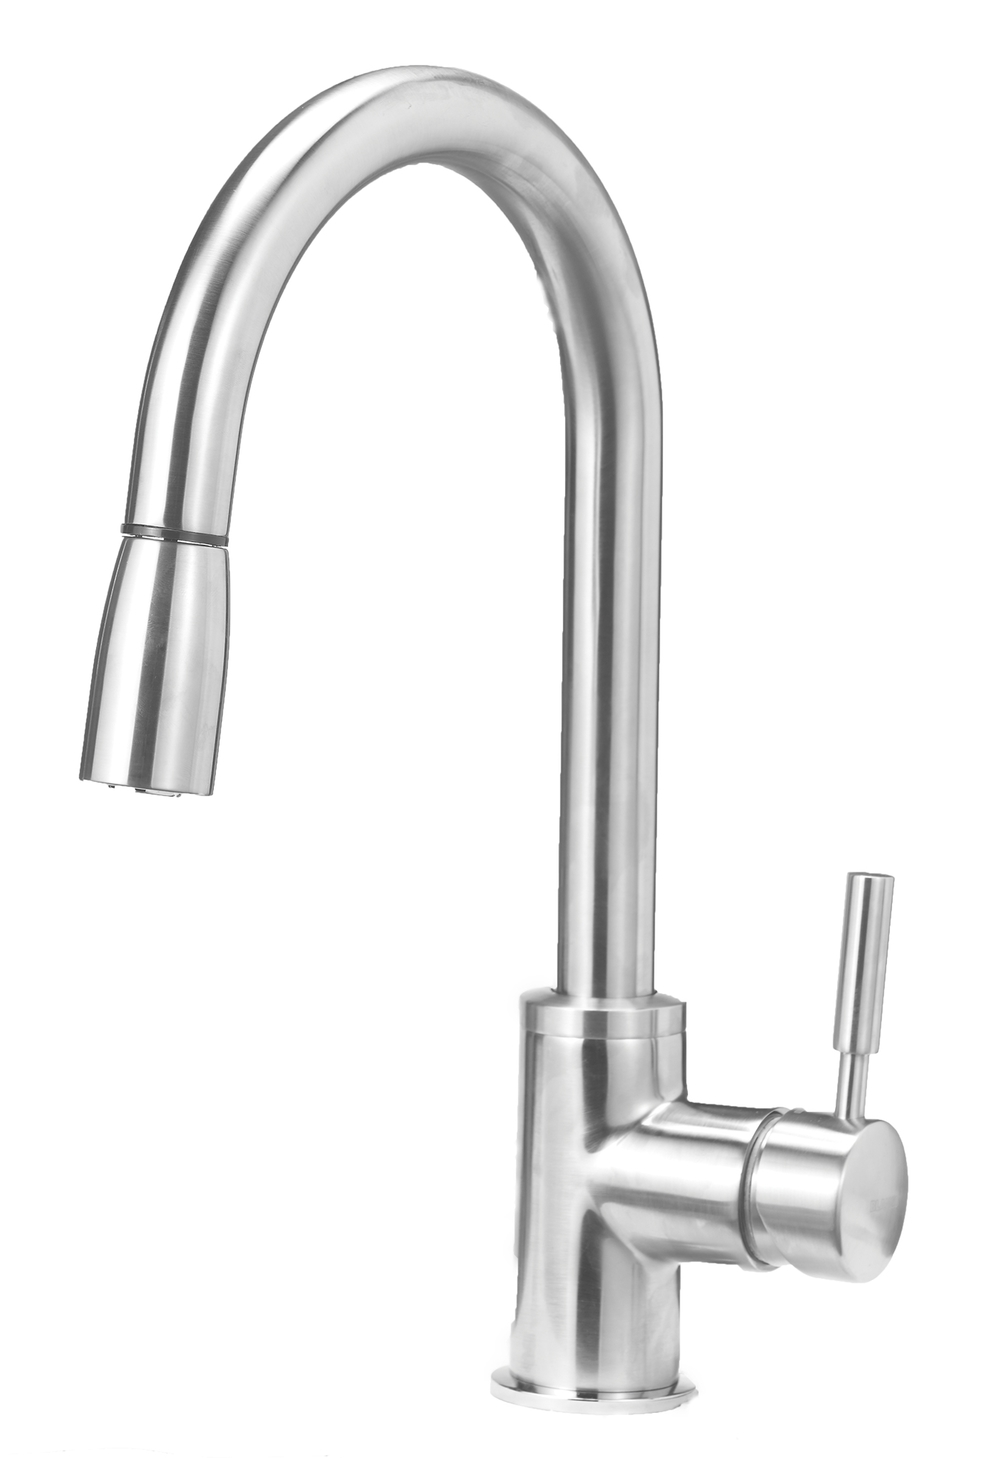 Blanco Sinks And Faucets : ... of Marketing for BLANCO, had to say about their newest offerings